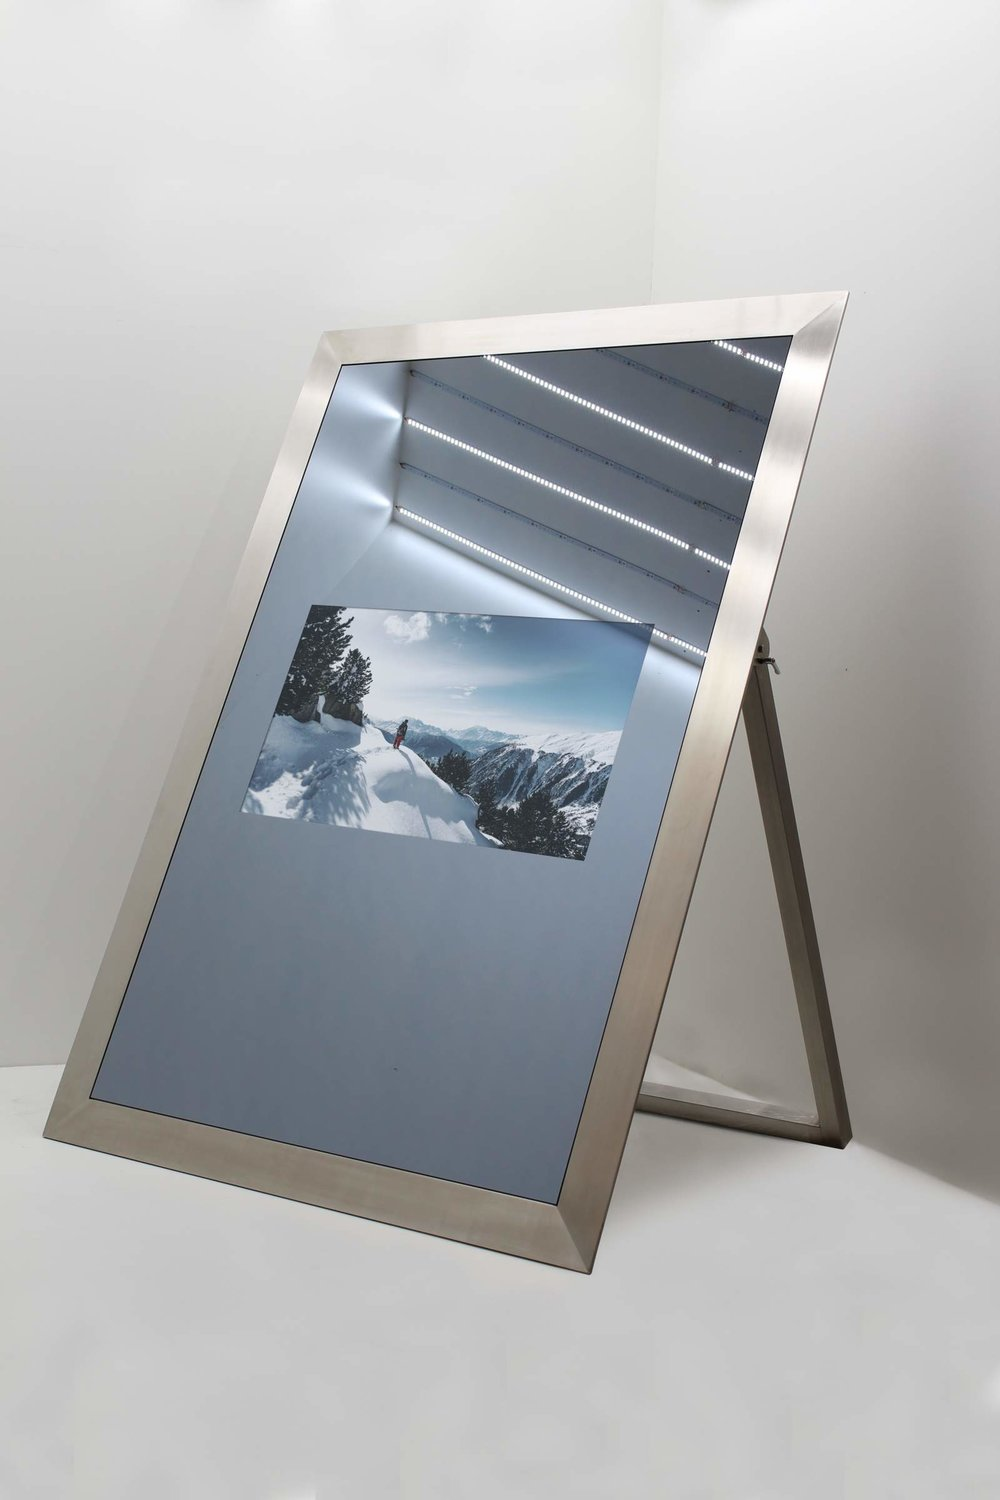 THE ELEGANCE MIRROR TV - ON.jpg